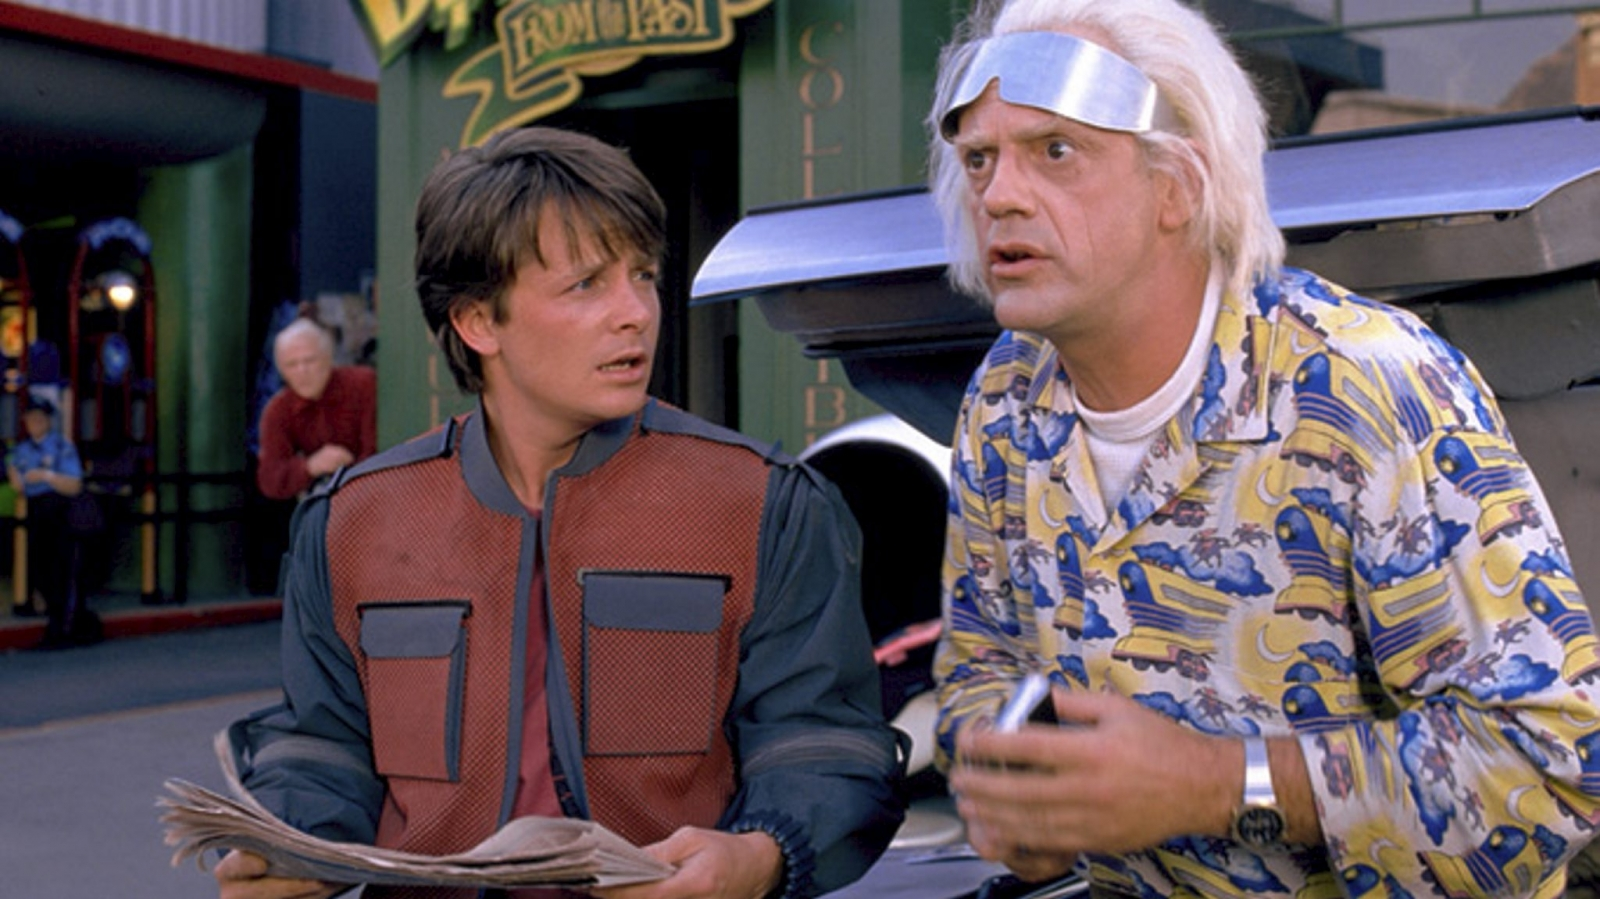 Marty McFly and Doc Brown visit the year 2015 in Back to the Future II